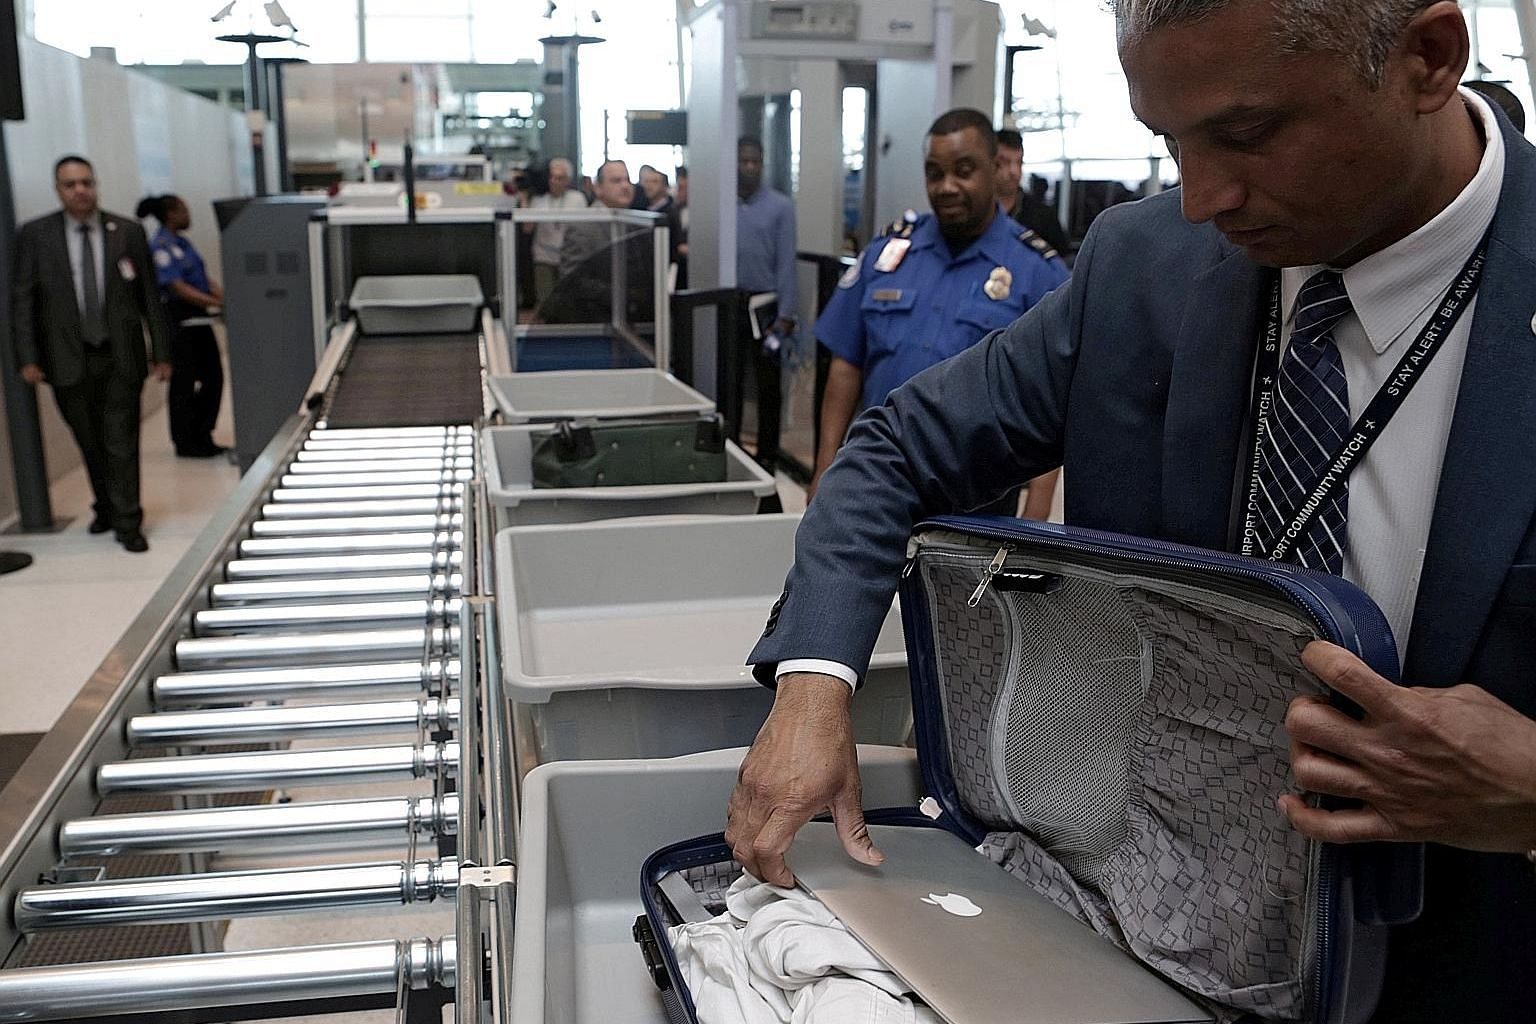 Travellers, such as this man at JFK International Airport in New York, often deposit hand-carried and personal items in the security bins. Researchers said airports should offer hand sanitisers before and after each security checkpoint, and the bagga